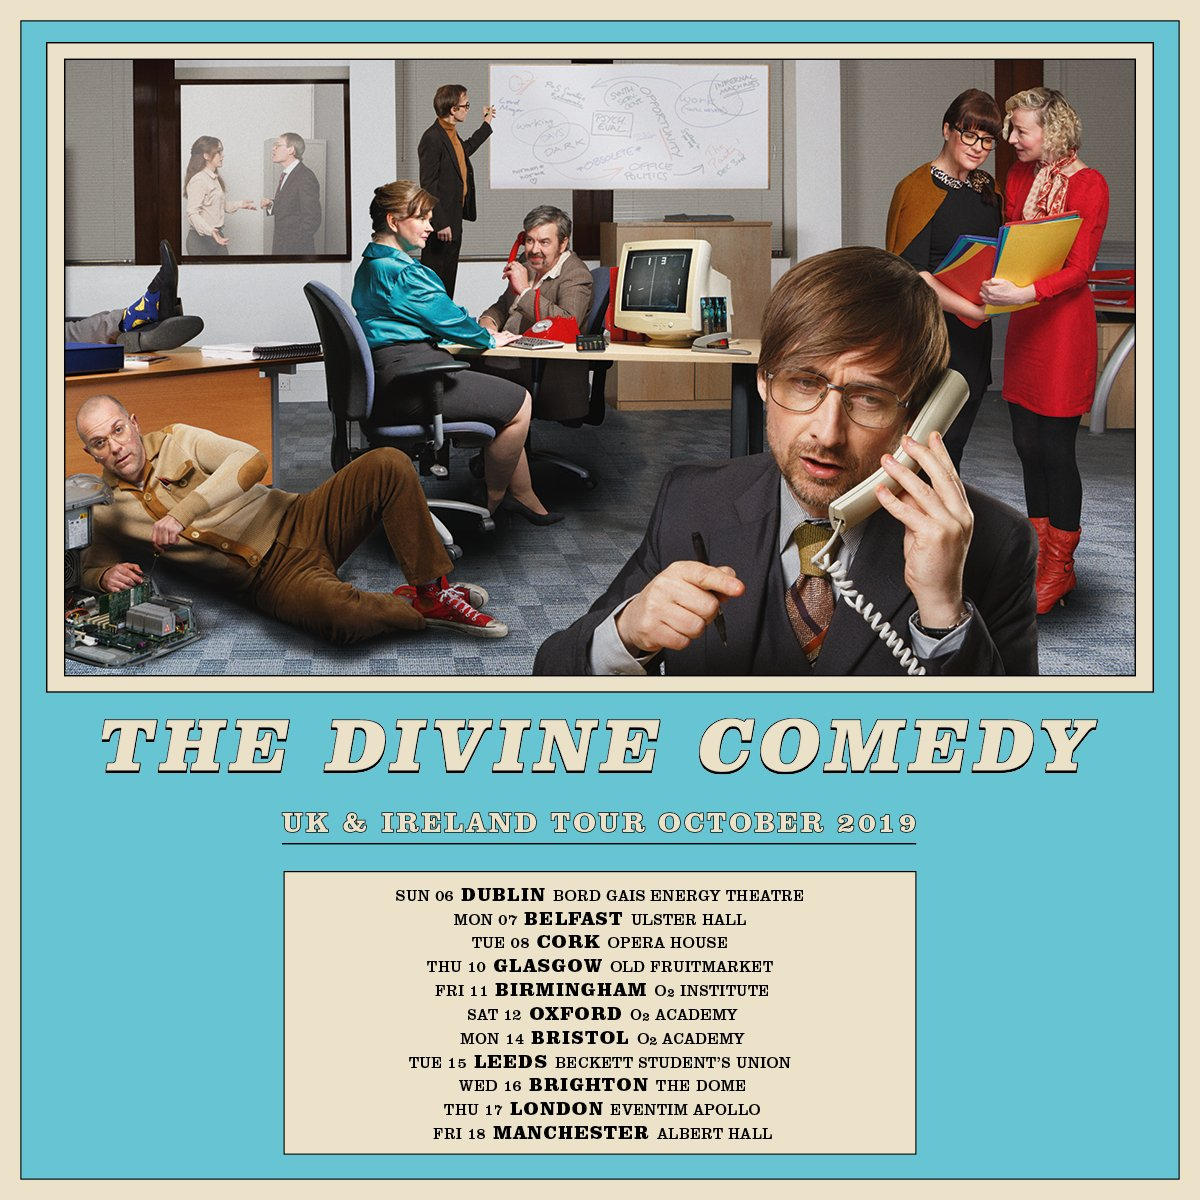 The Divine Comedy on Twitter: